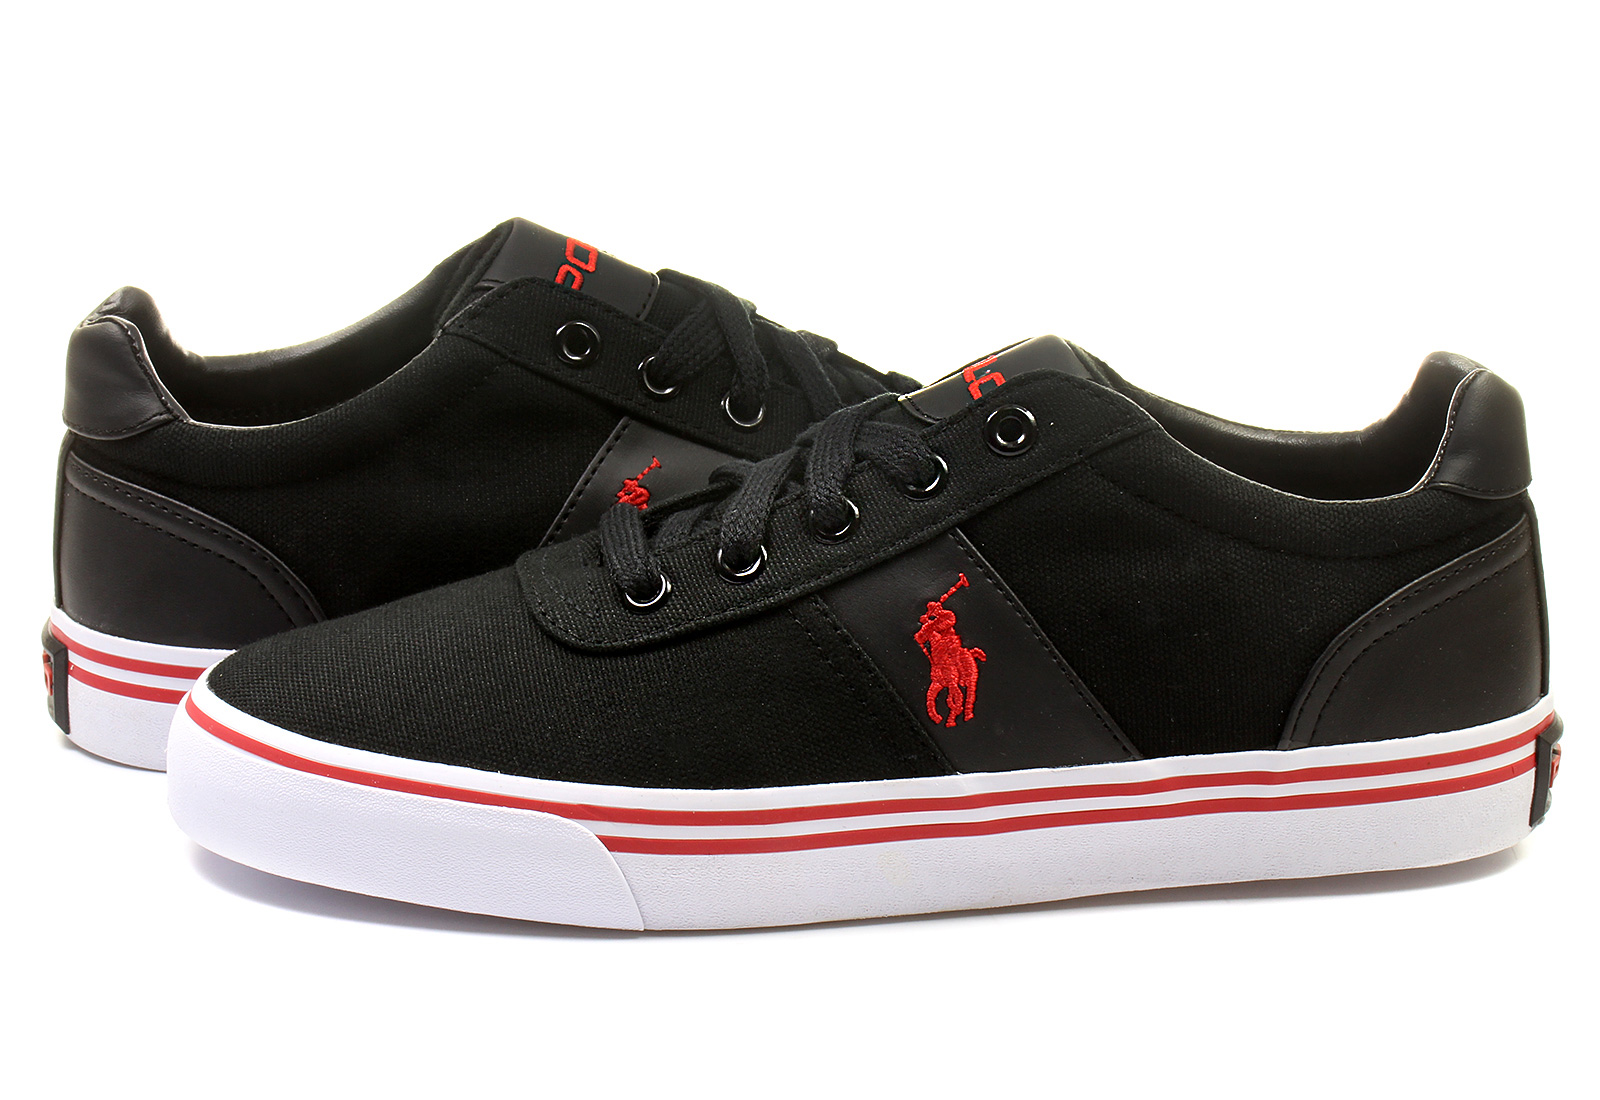 polo ralph lauren shoes hanford 221 c w0ss2 online shop for sneakers shoes and boots. Black Bedroom Furniture Sets. Home Design Ideas